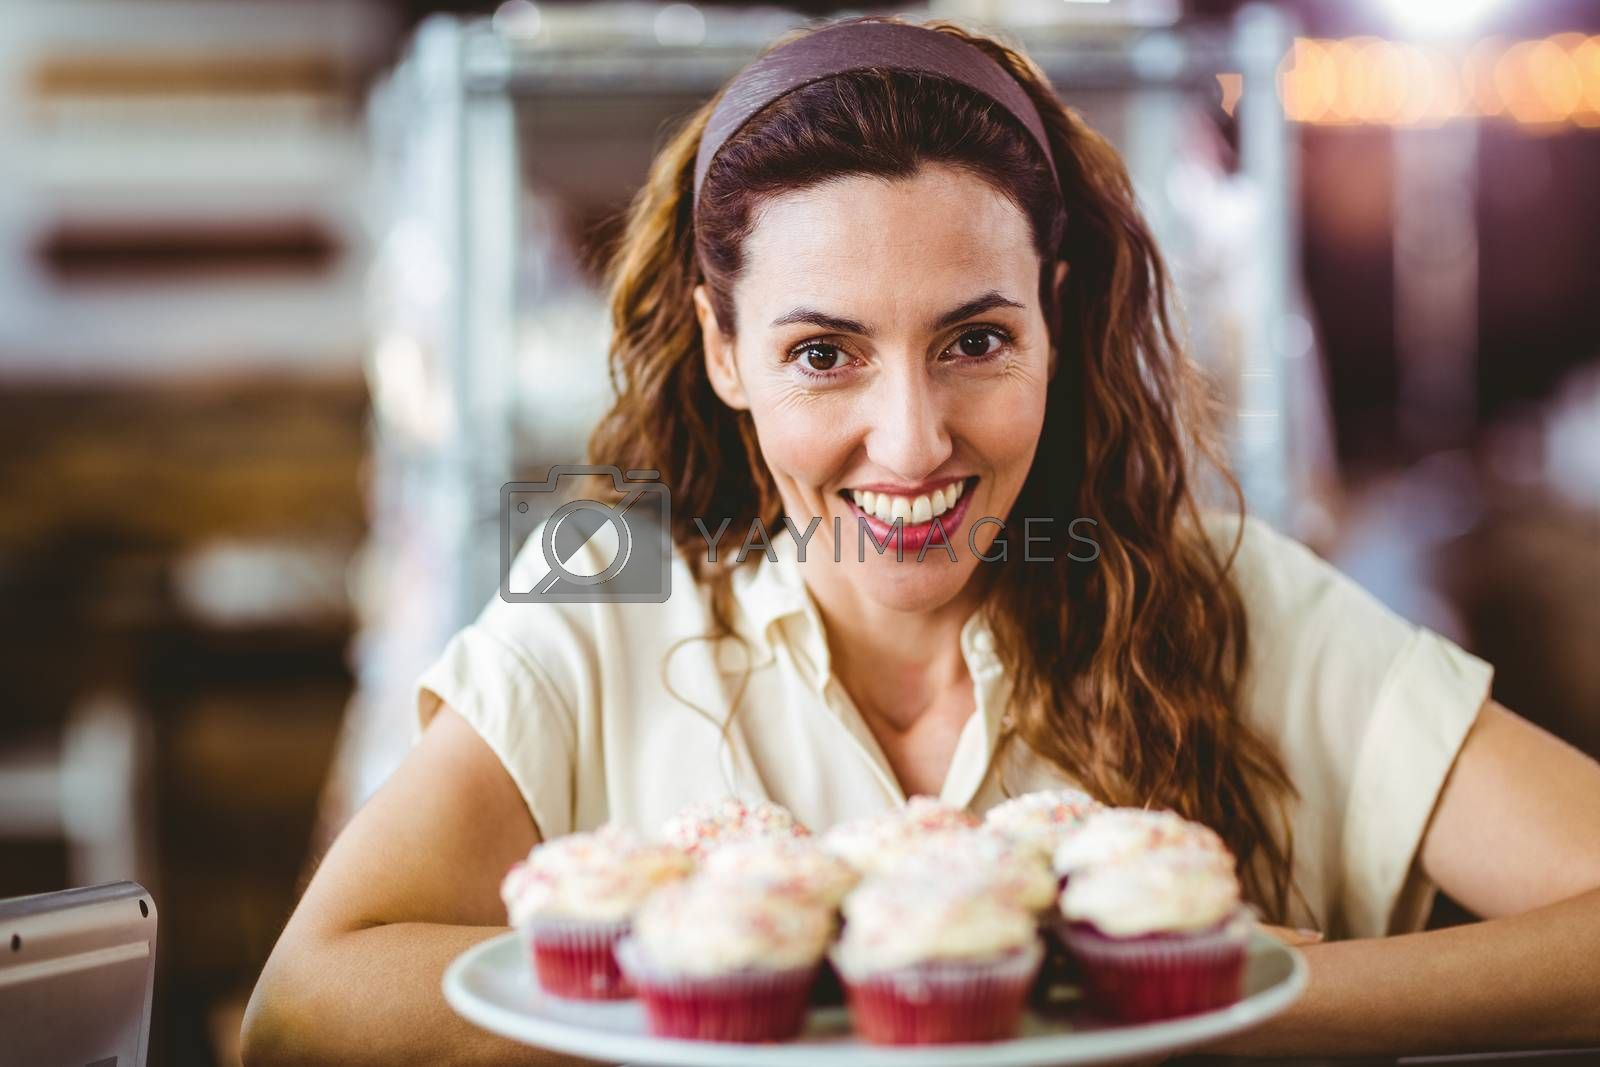 Royalty free image of Pretty brunette smiling at camera by Wavebreakmedia